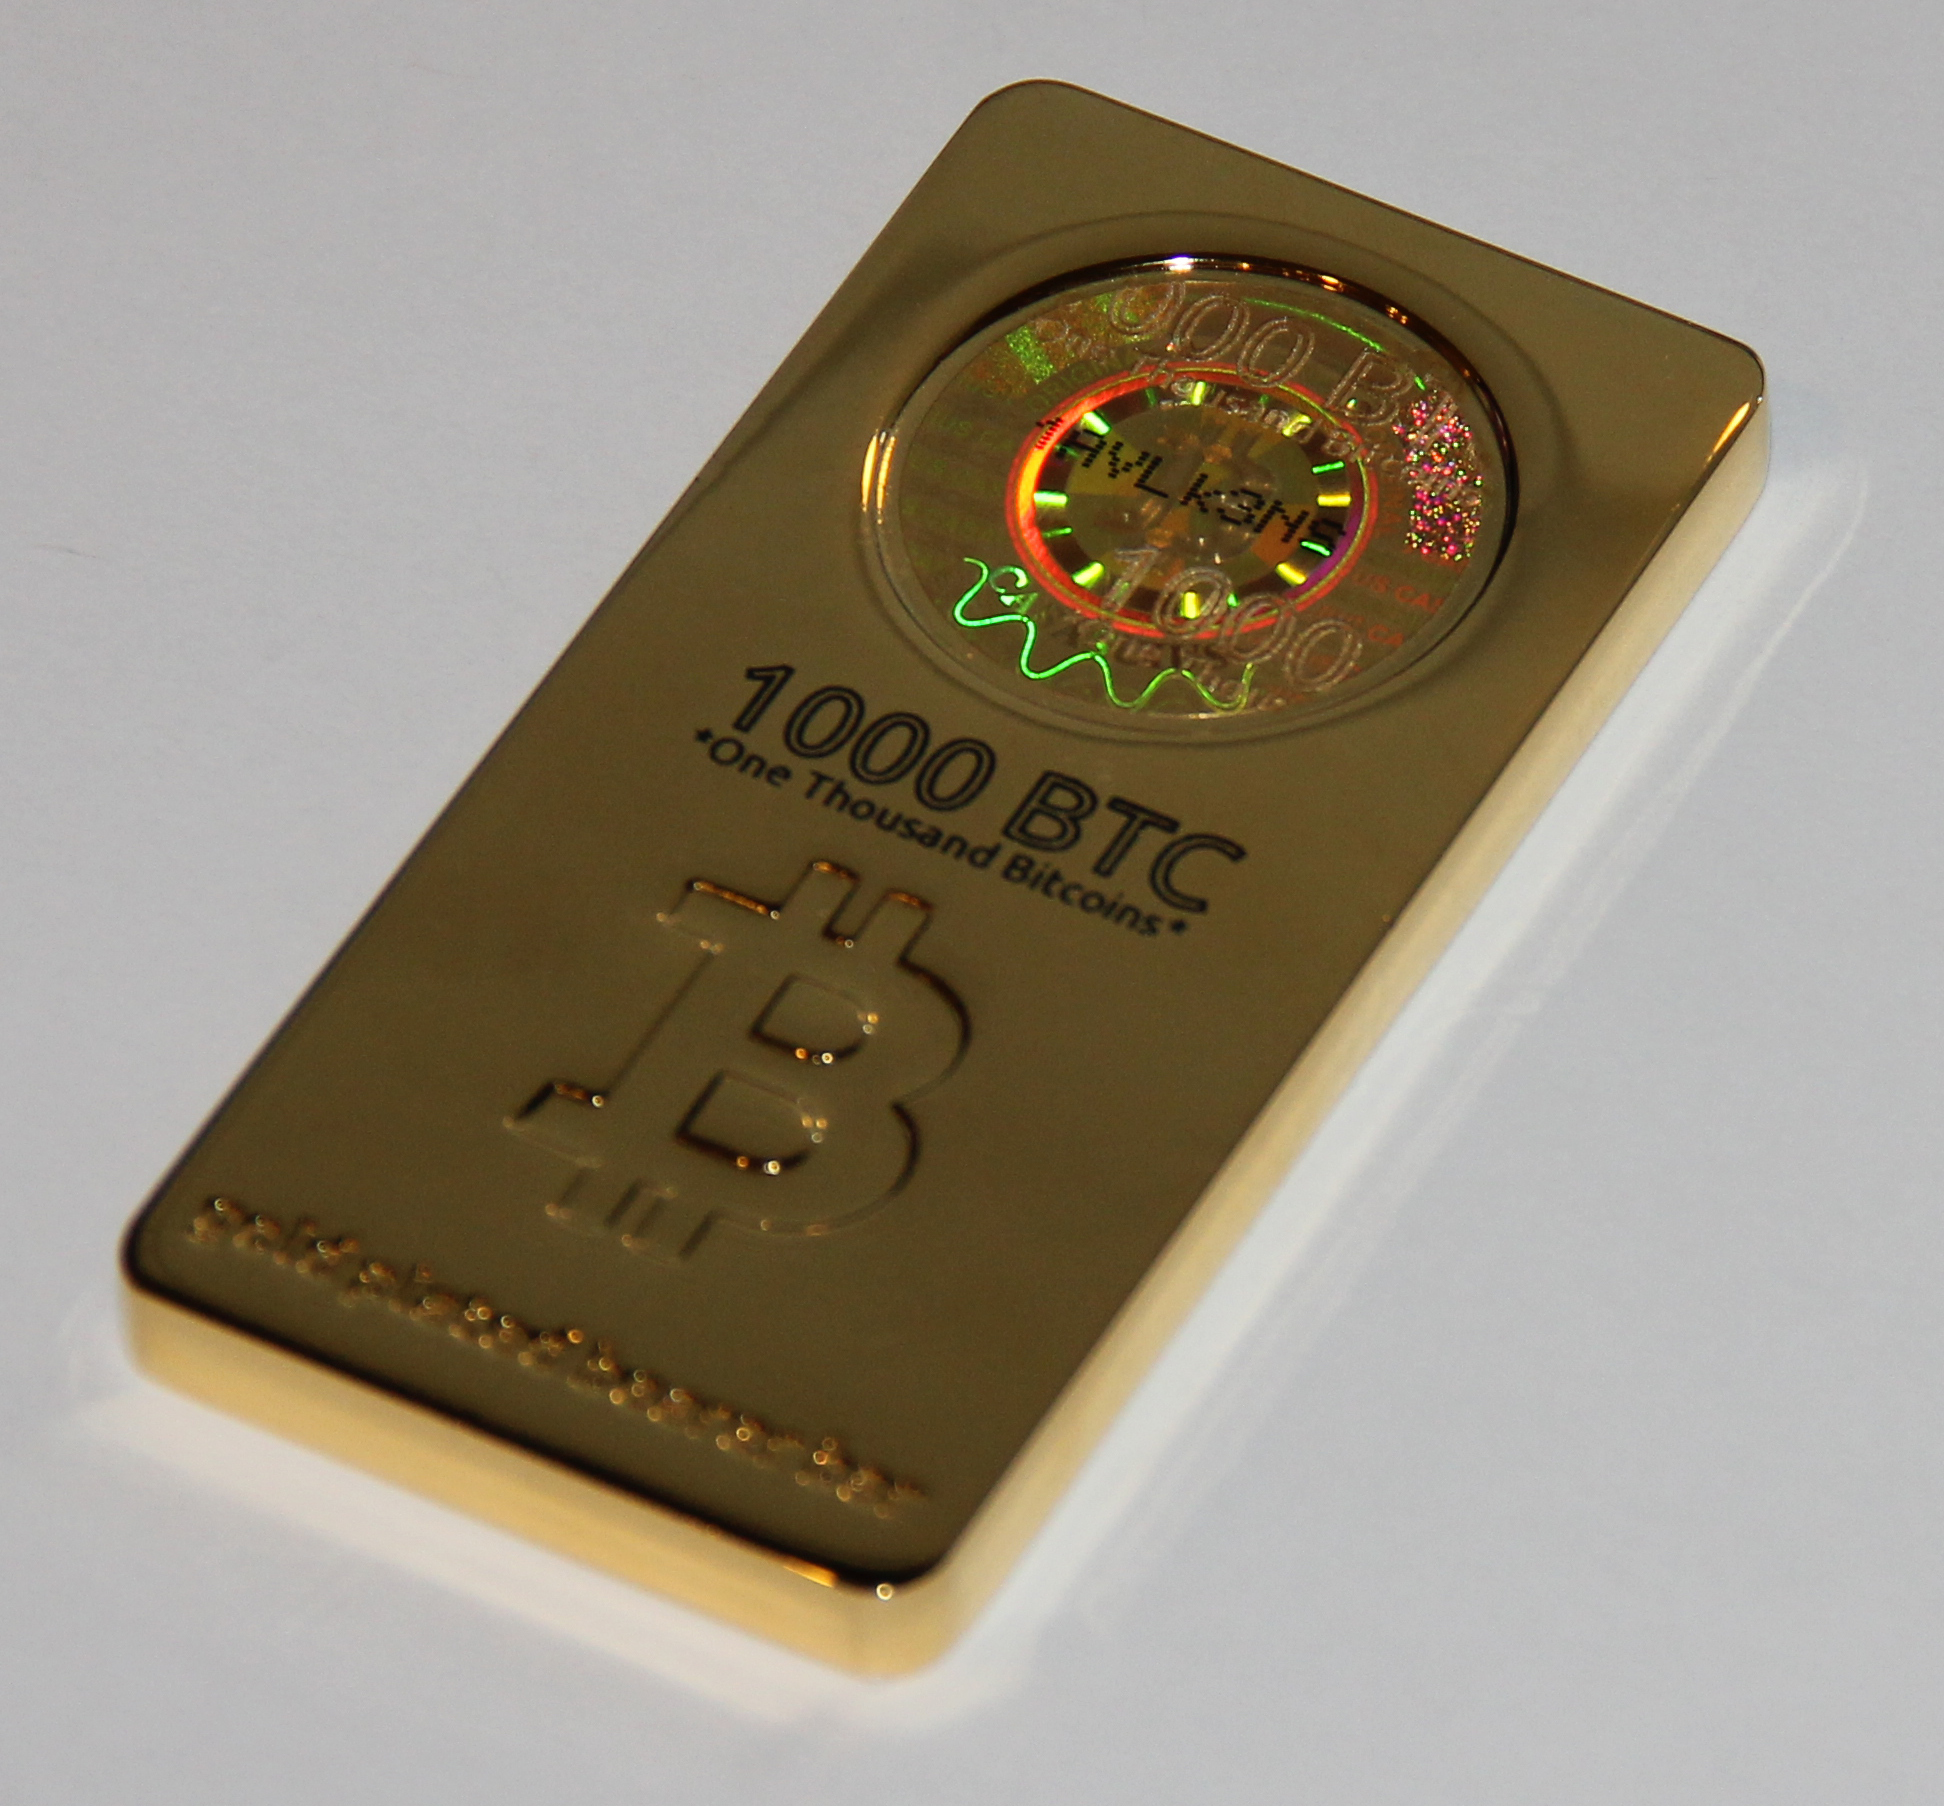 File:1000 btc gold bar.jpg